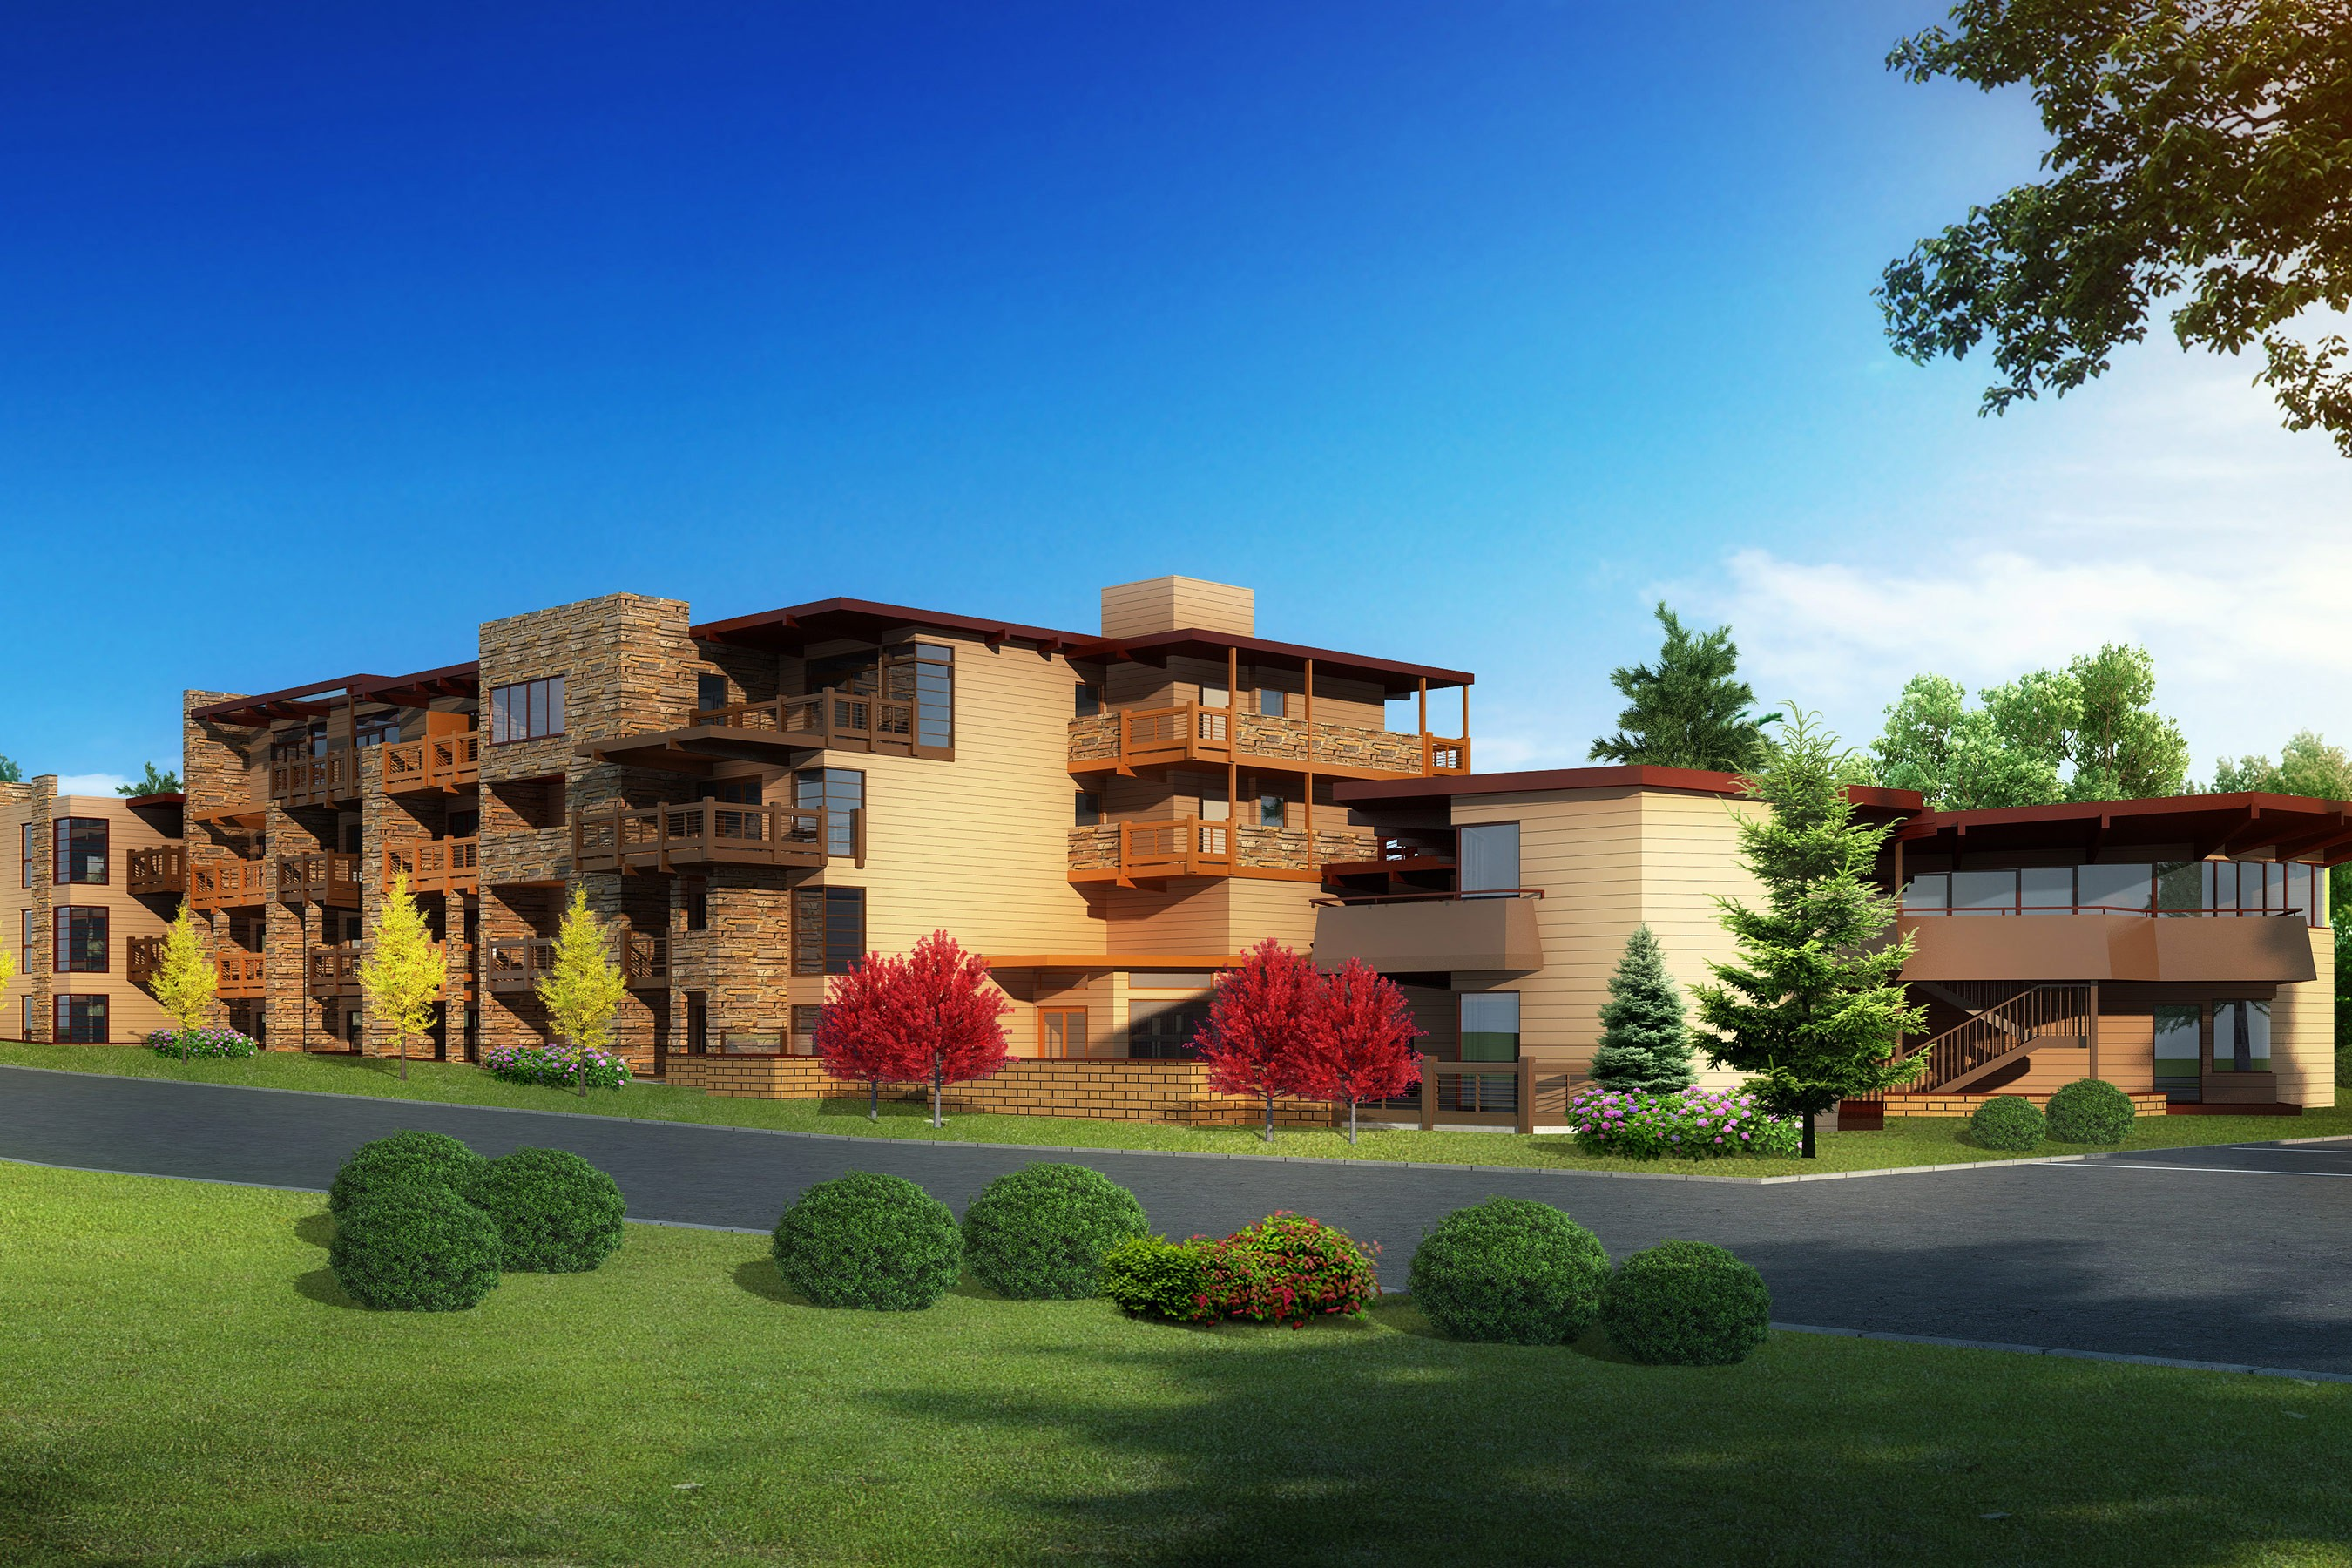 Condominium for Sale at Boomerang Lodge 500 W. Hopkins Avenue Unit 117 Aspen, Colorado, 81611 United States